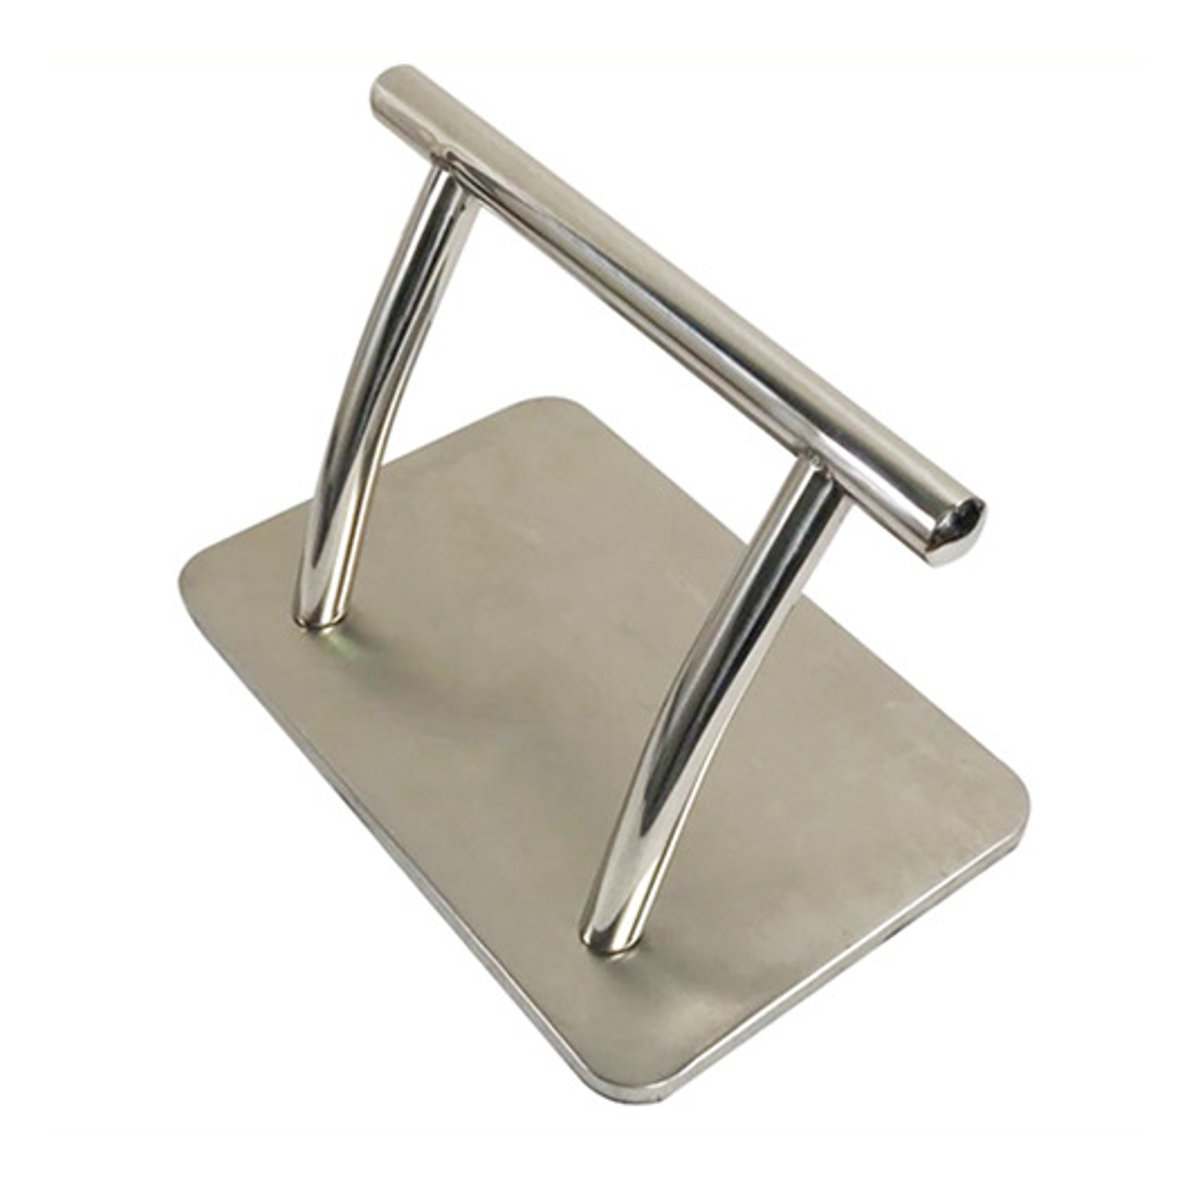 Barber Chair Stainless Steel Footrest Salon Tattoo Hairdressing Seat Floor Stand Foot Rest Furniture Parts Accessories Non-Slip